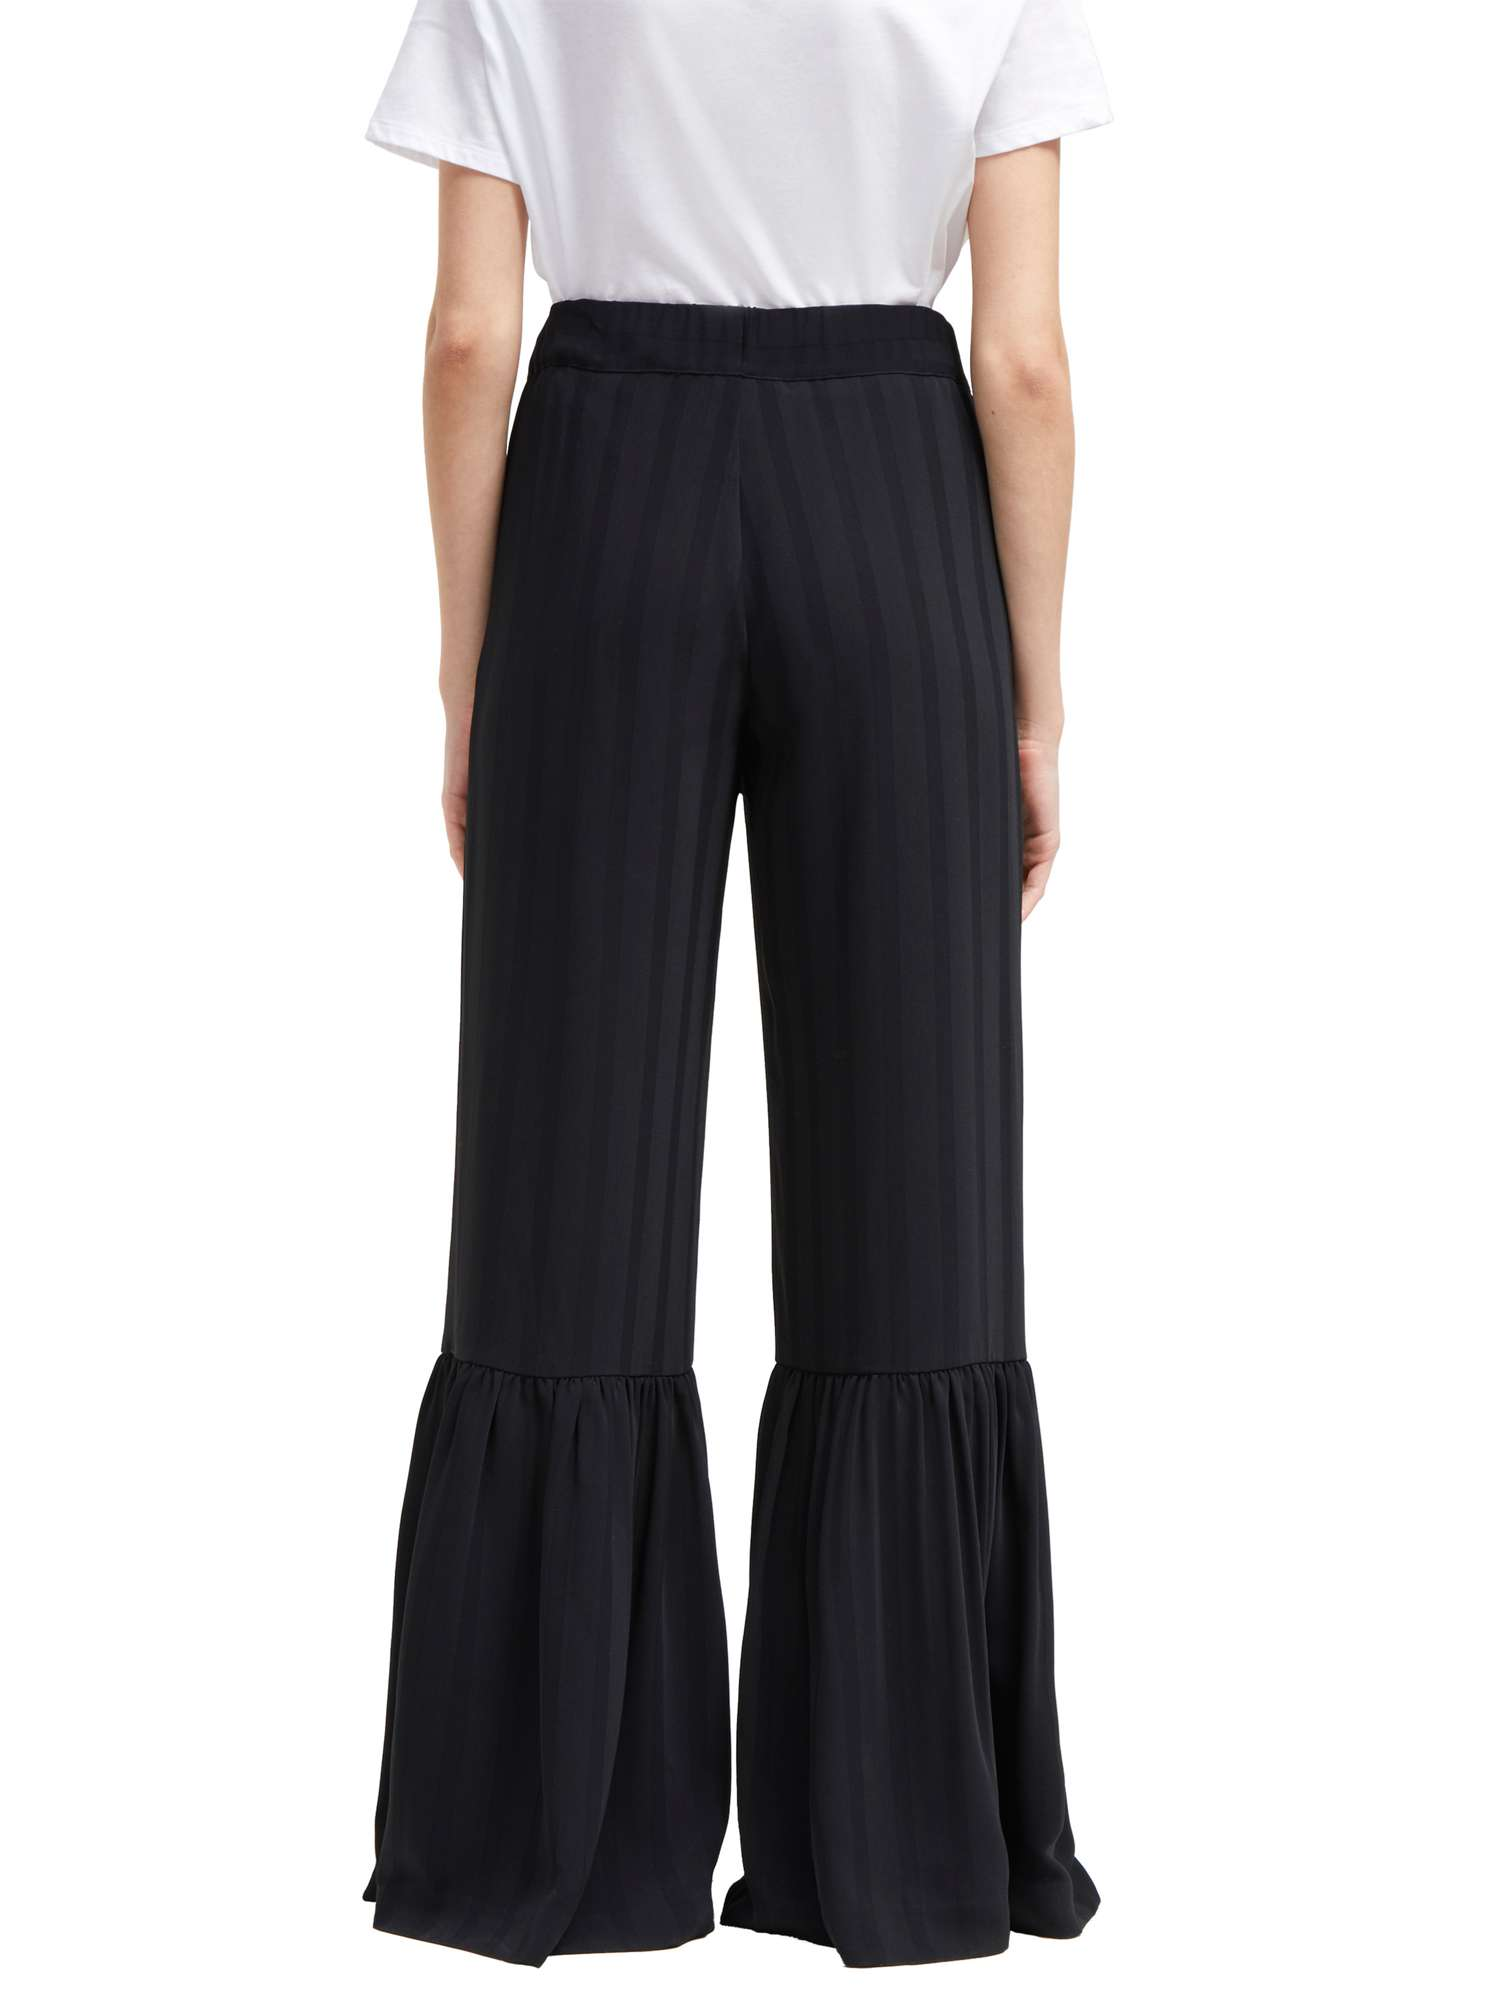 Aleida French Connection Suiting Bottom Bell Trousers FqYqU